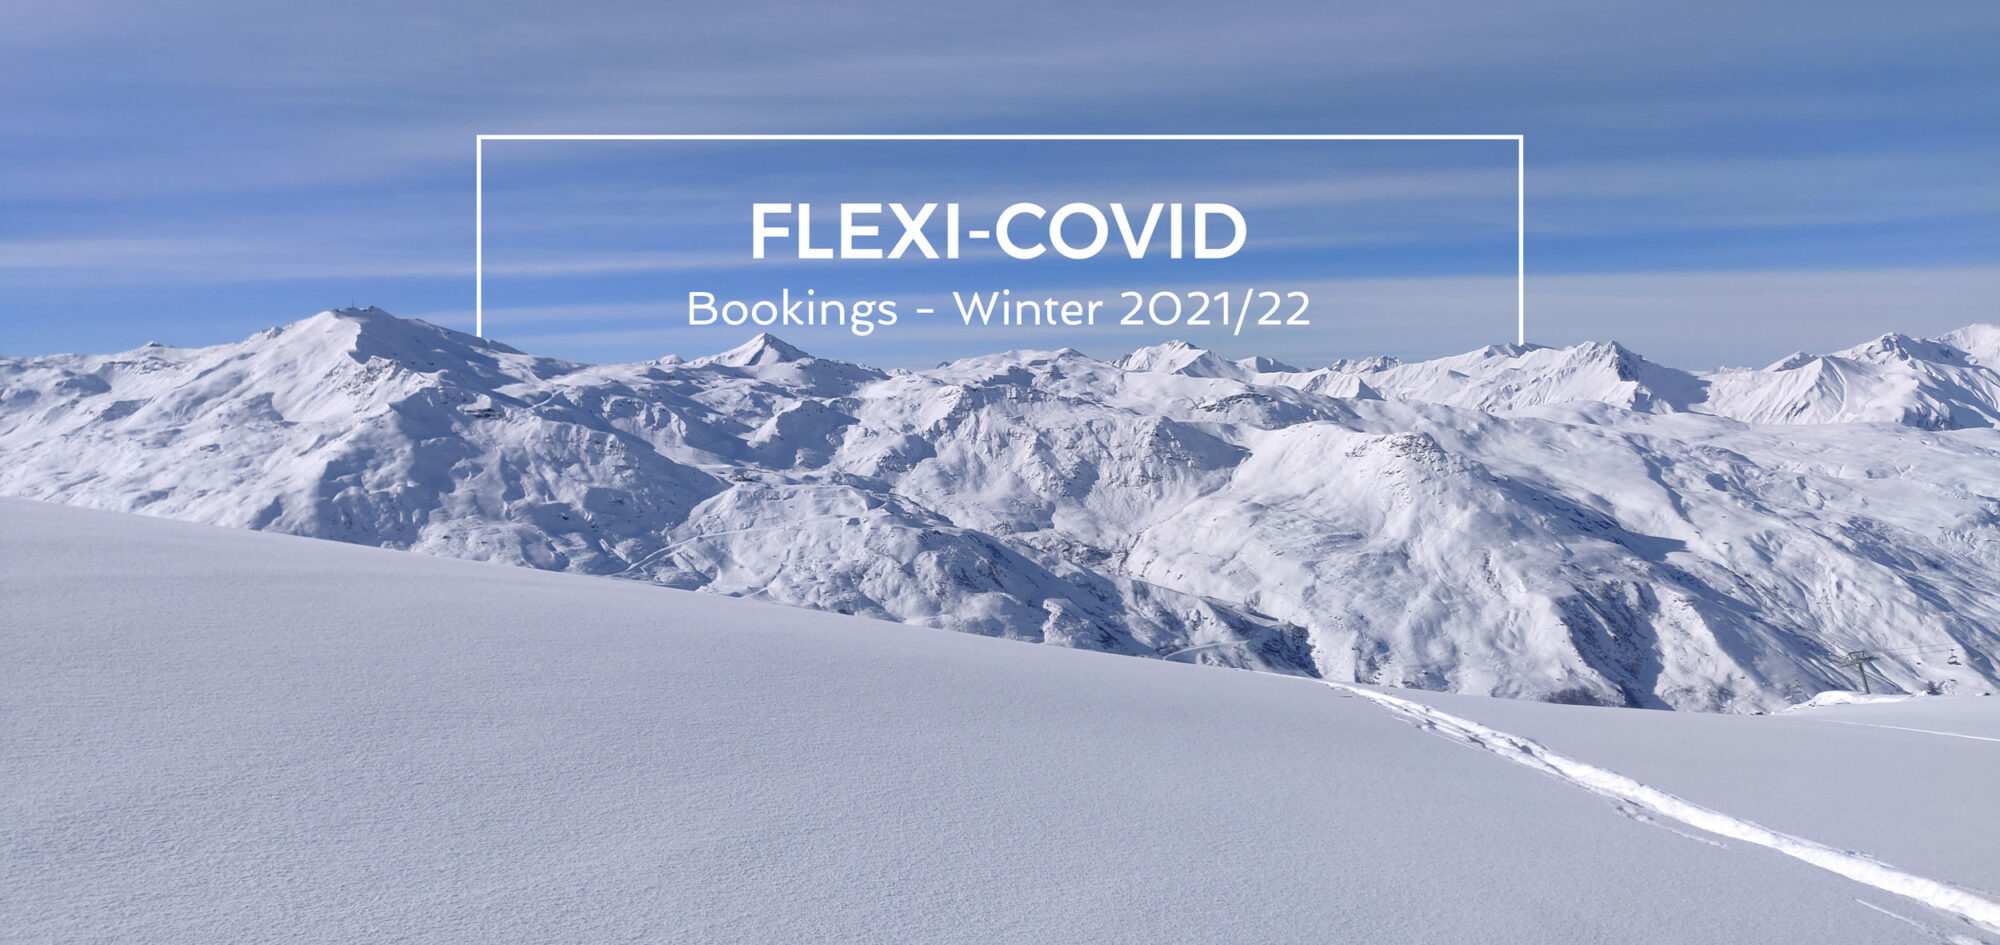 Flexi-Covid booking terms - Winter skiing holidays 2021/22